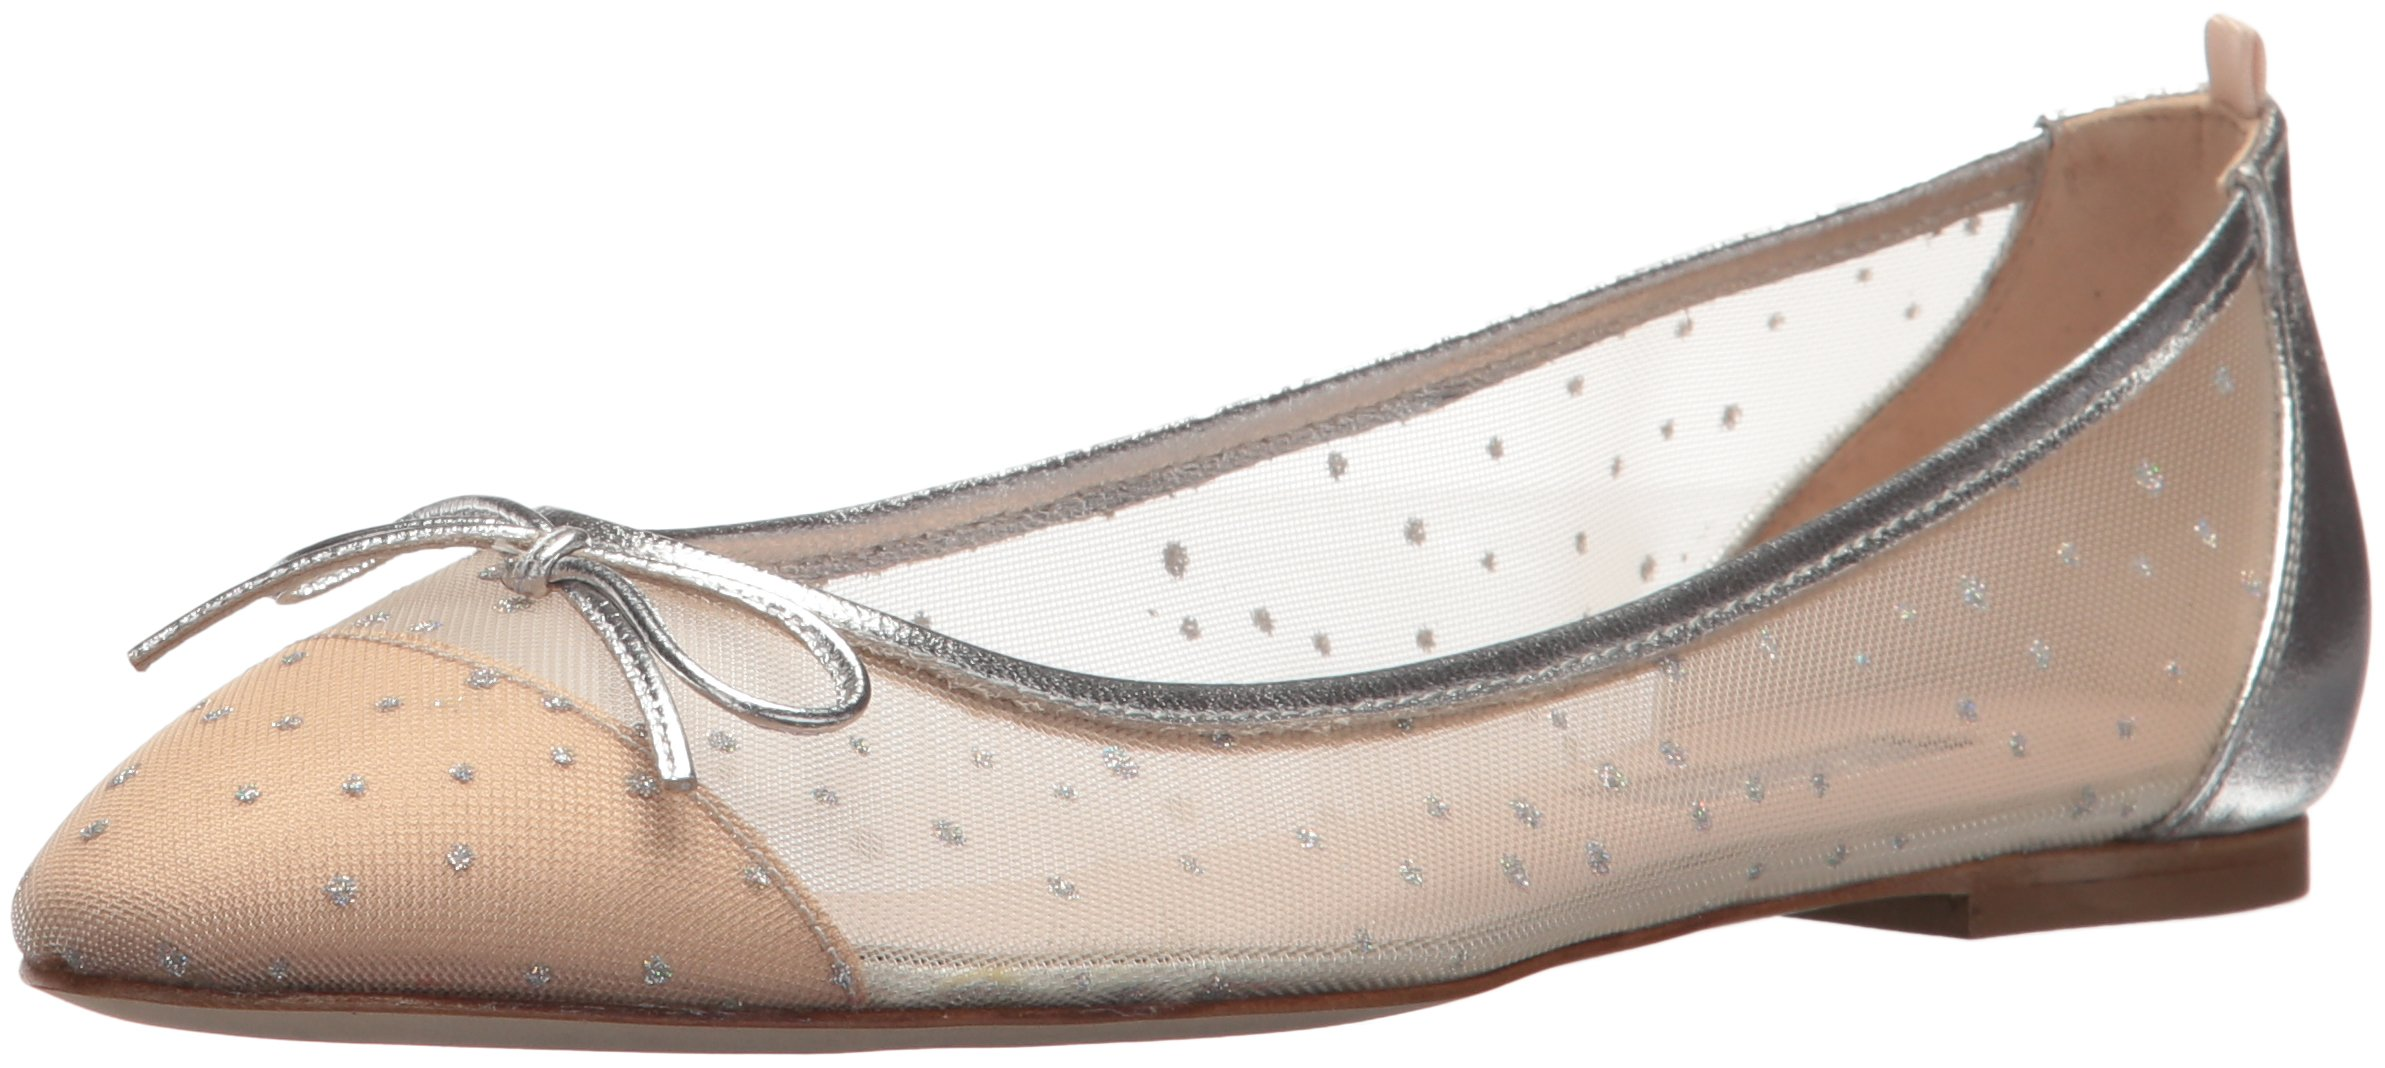 SJP by Sarah Jessica Parker Women's First Dance Ballet Flat, Ivey Raindrops Fabric, 37.5 B EU (7 US)